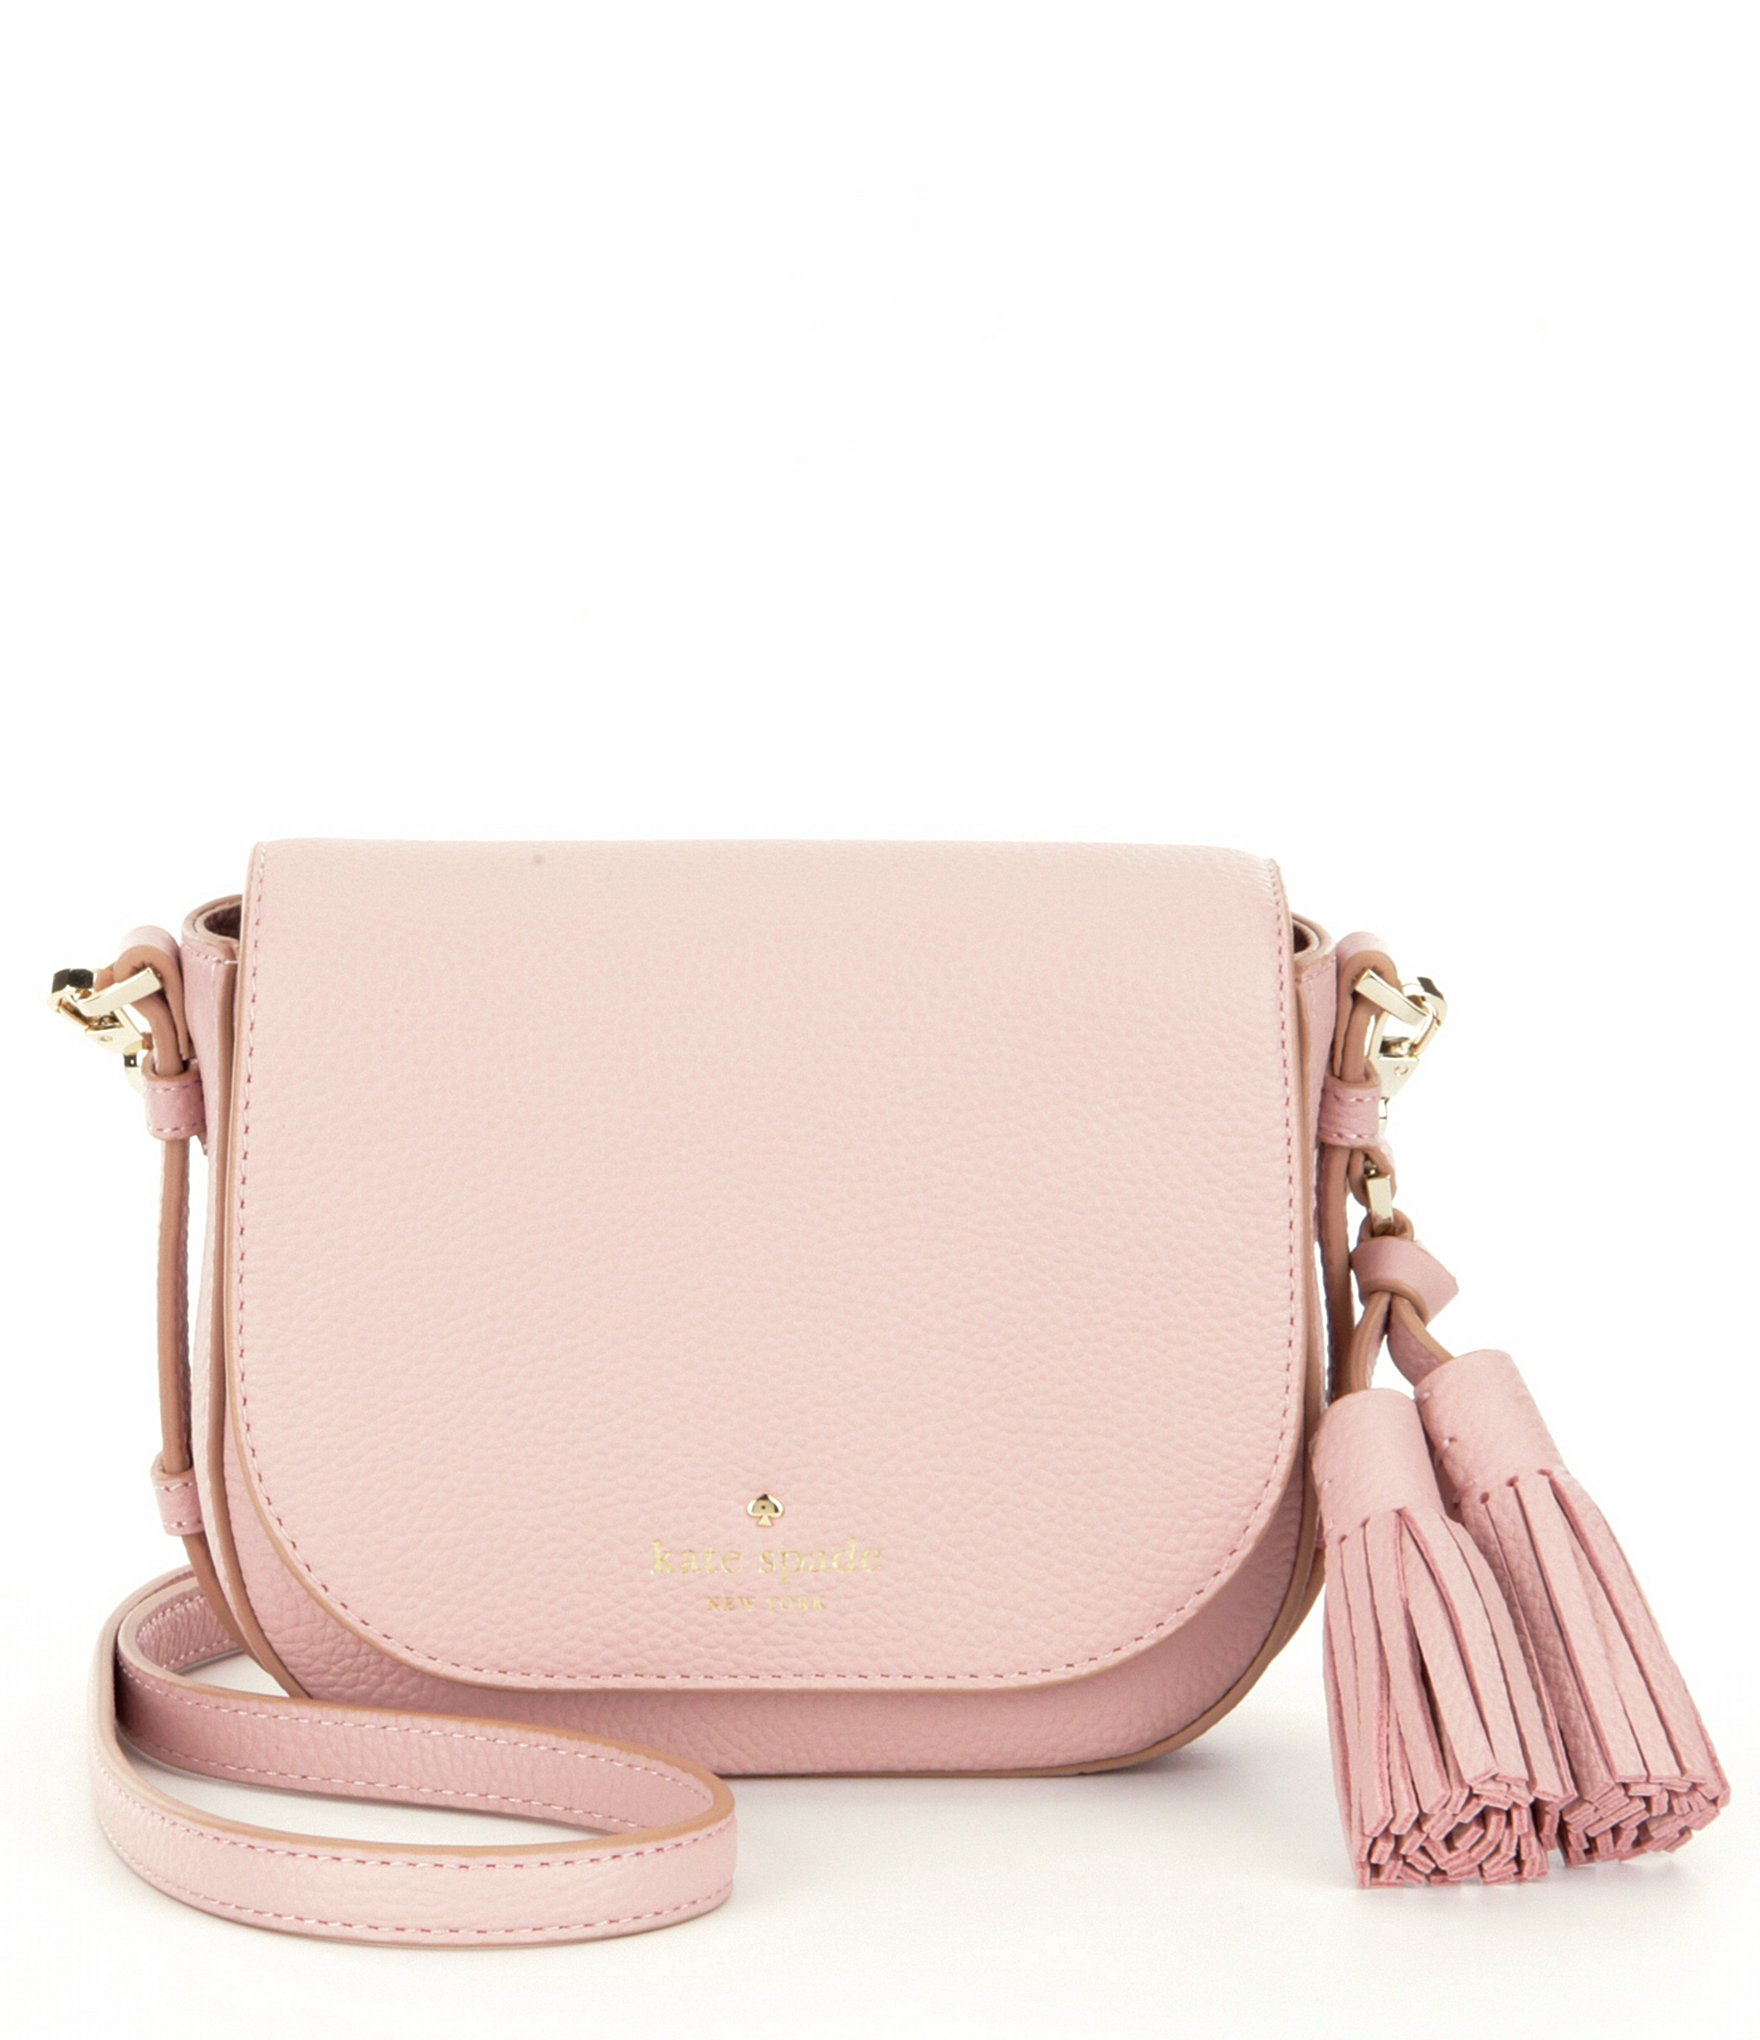 996cee22e Kate Spade Orchard Street Small Penelope Cross-body Bag - Lyst